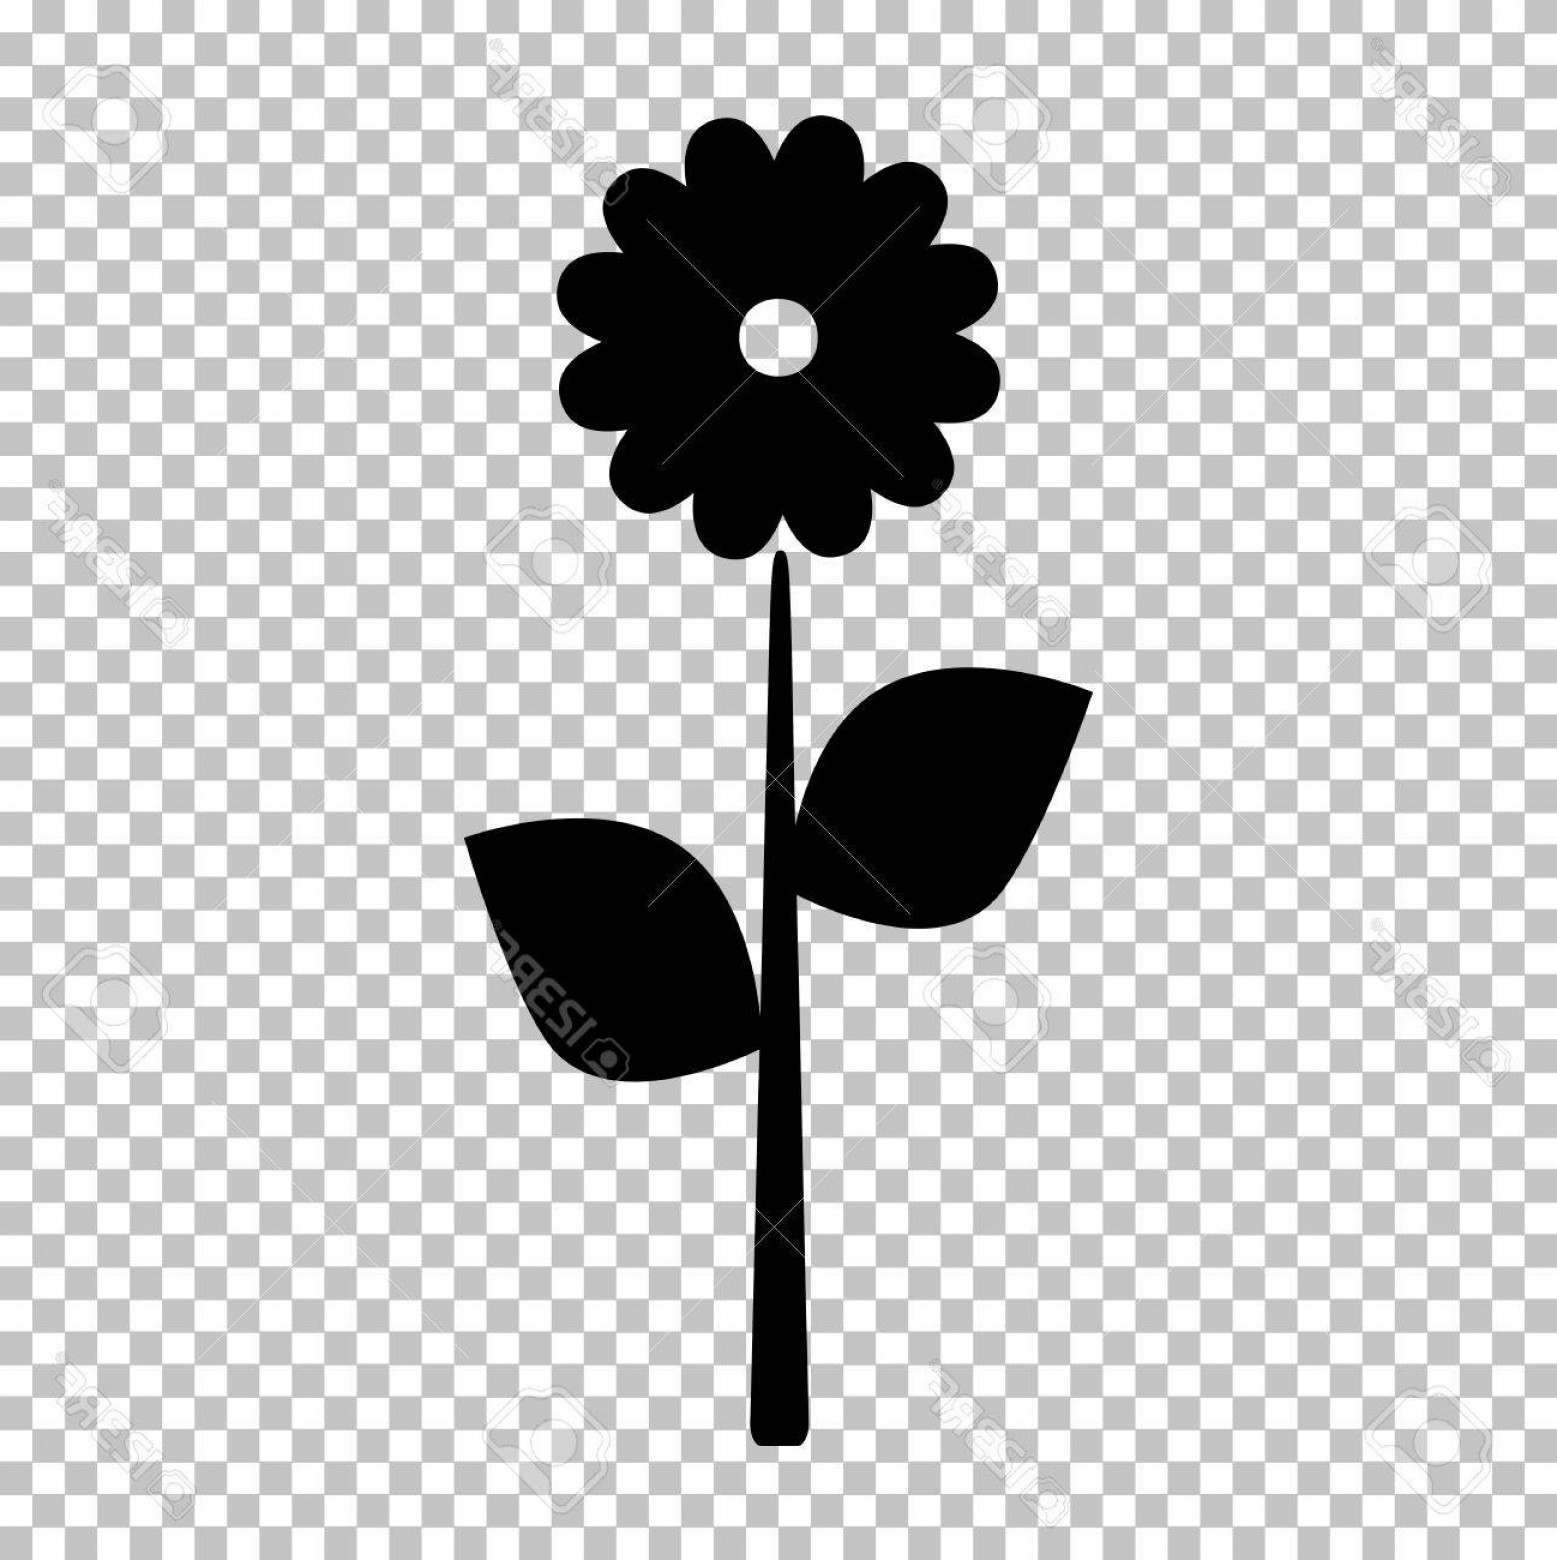 Icon Of Flower Vectors: Photostock Vector Flower Sign Flat Style Icon On Transparent Background